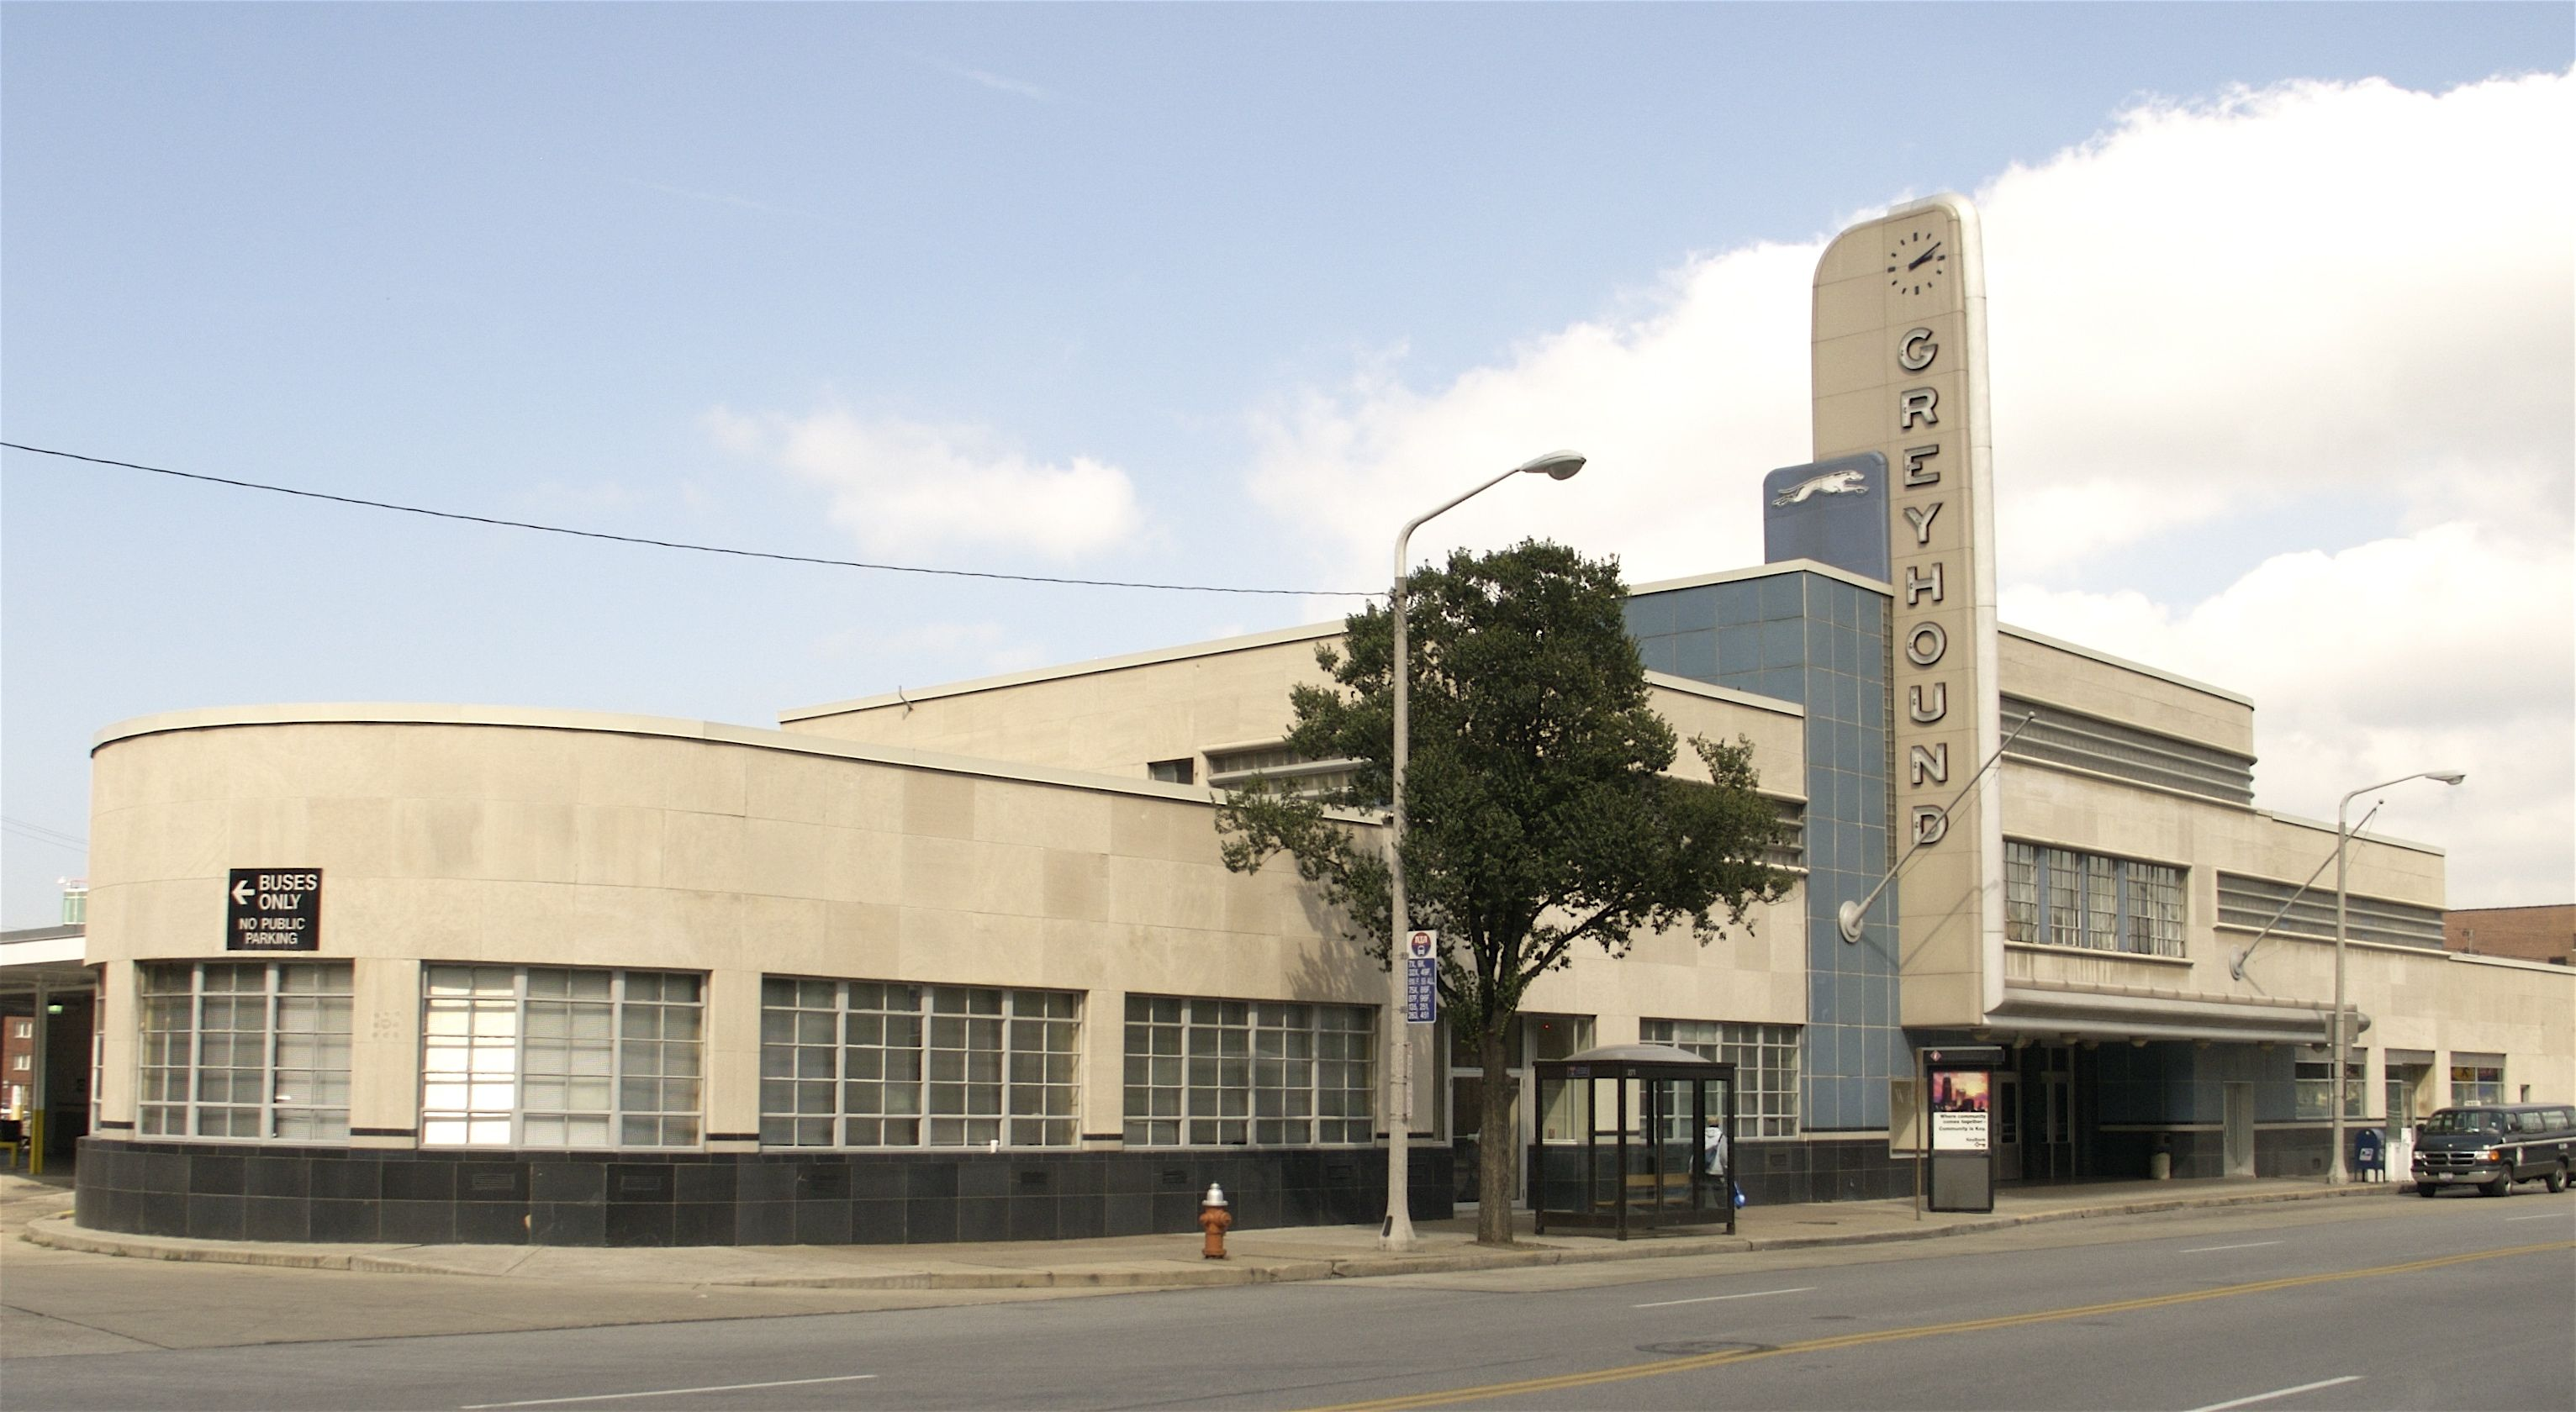 The Greyhound Bus Terminal In Cleveland Ohio The Shape Of This Design Is Shown Through The Horizontal Streamline Moderne Art Deco Architecture Greyhound Bus